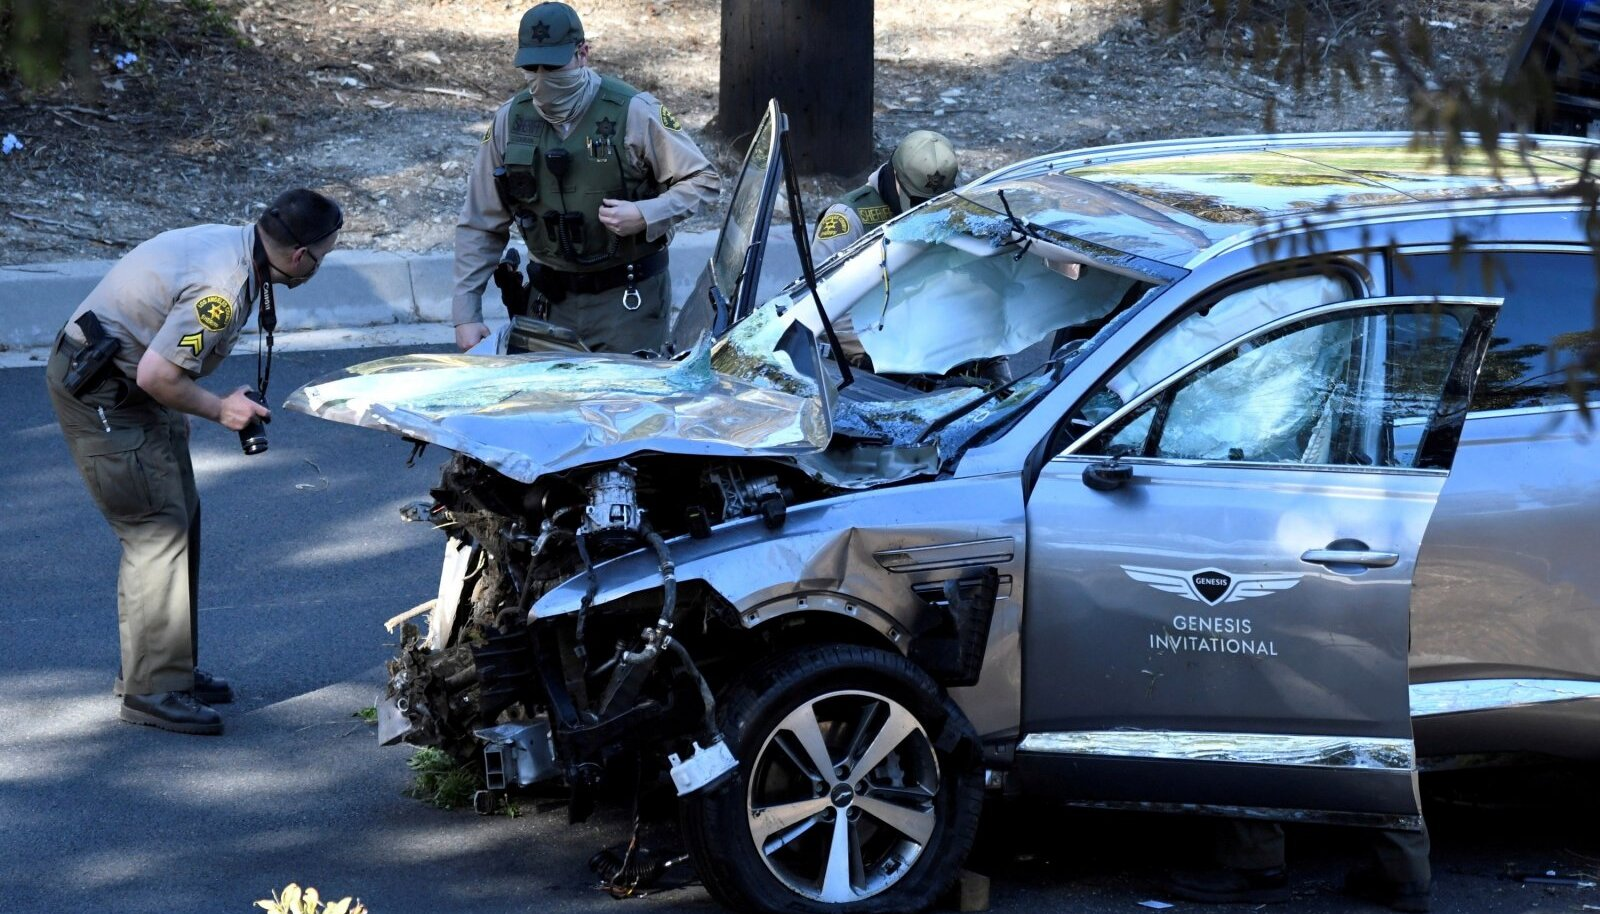 FILE PHOTO: The vehicle of golfer Tiger Woods is recovered in Los Angeles